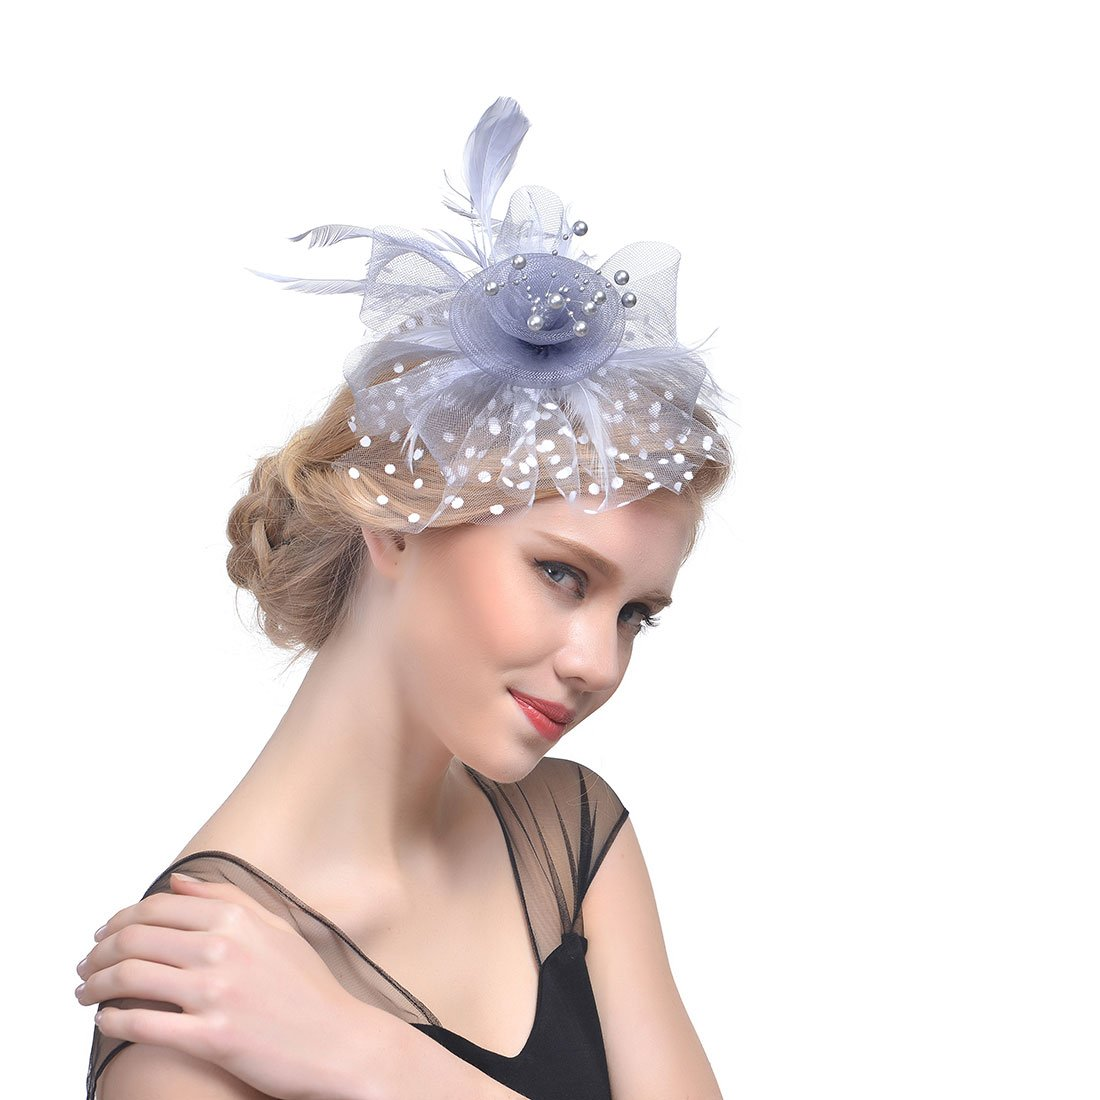 Women's Fascinators Hat Flower Mesh Ribbons Headband Forked Clip Wedding Headwear